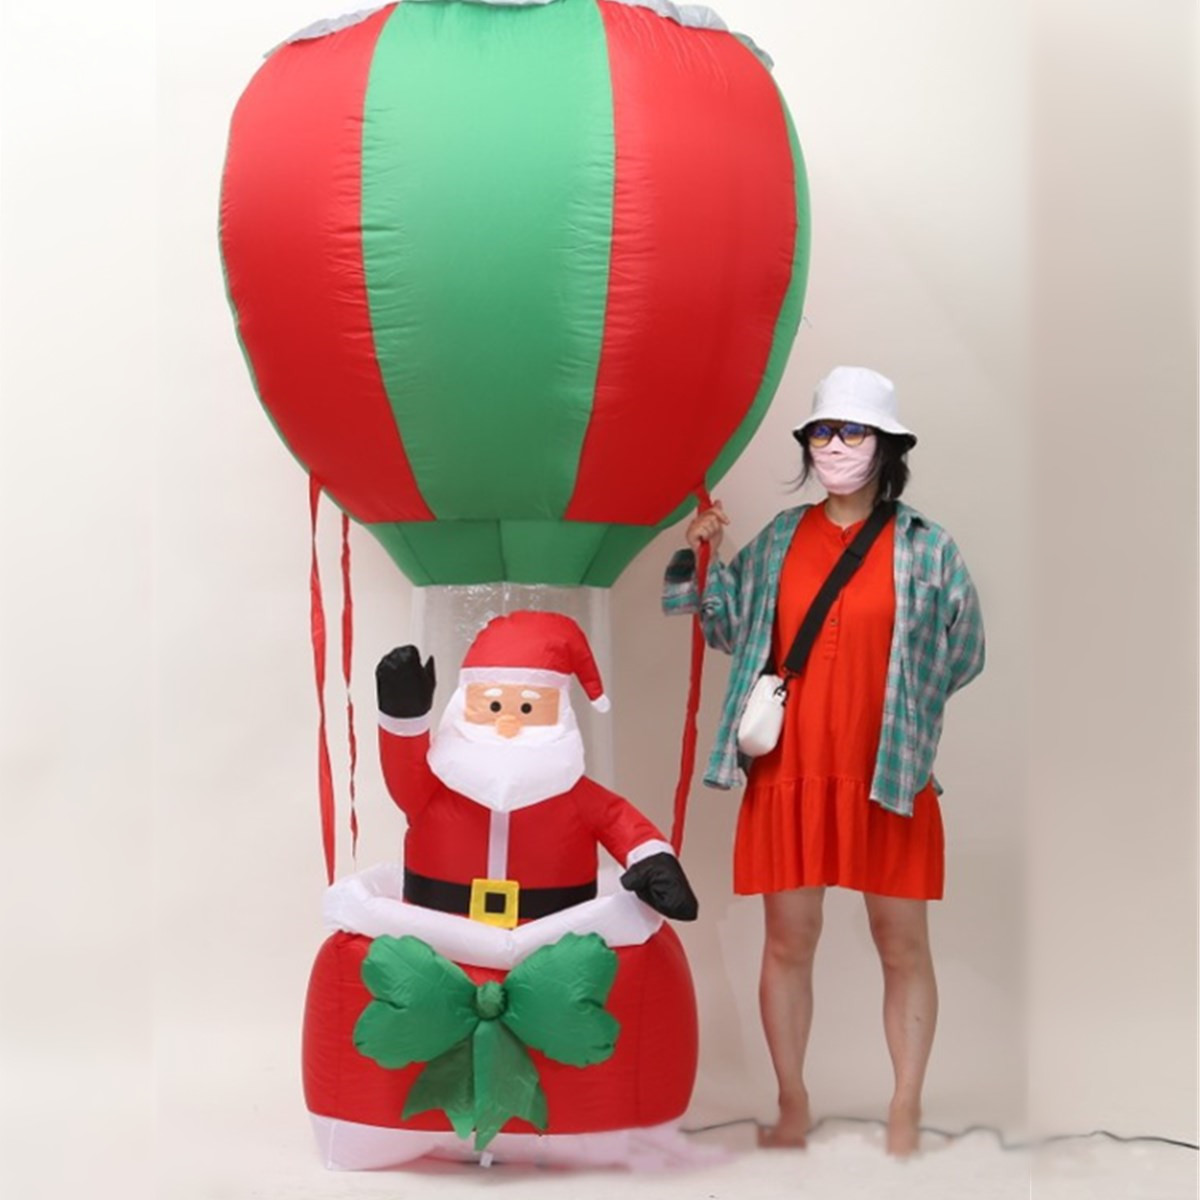 2.4M Air Inflatable Santa Claus Snowman hot air balloon Outdoor Airblown Christmas Decoration Figure Kids Classic Toys air shipping christmas archway airblown animated inflatable gingerbread house with led lights for yard decoration